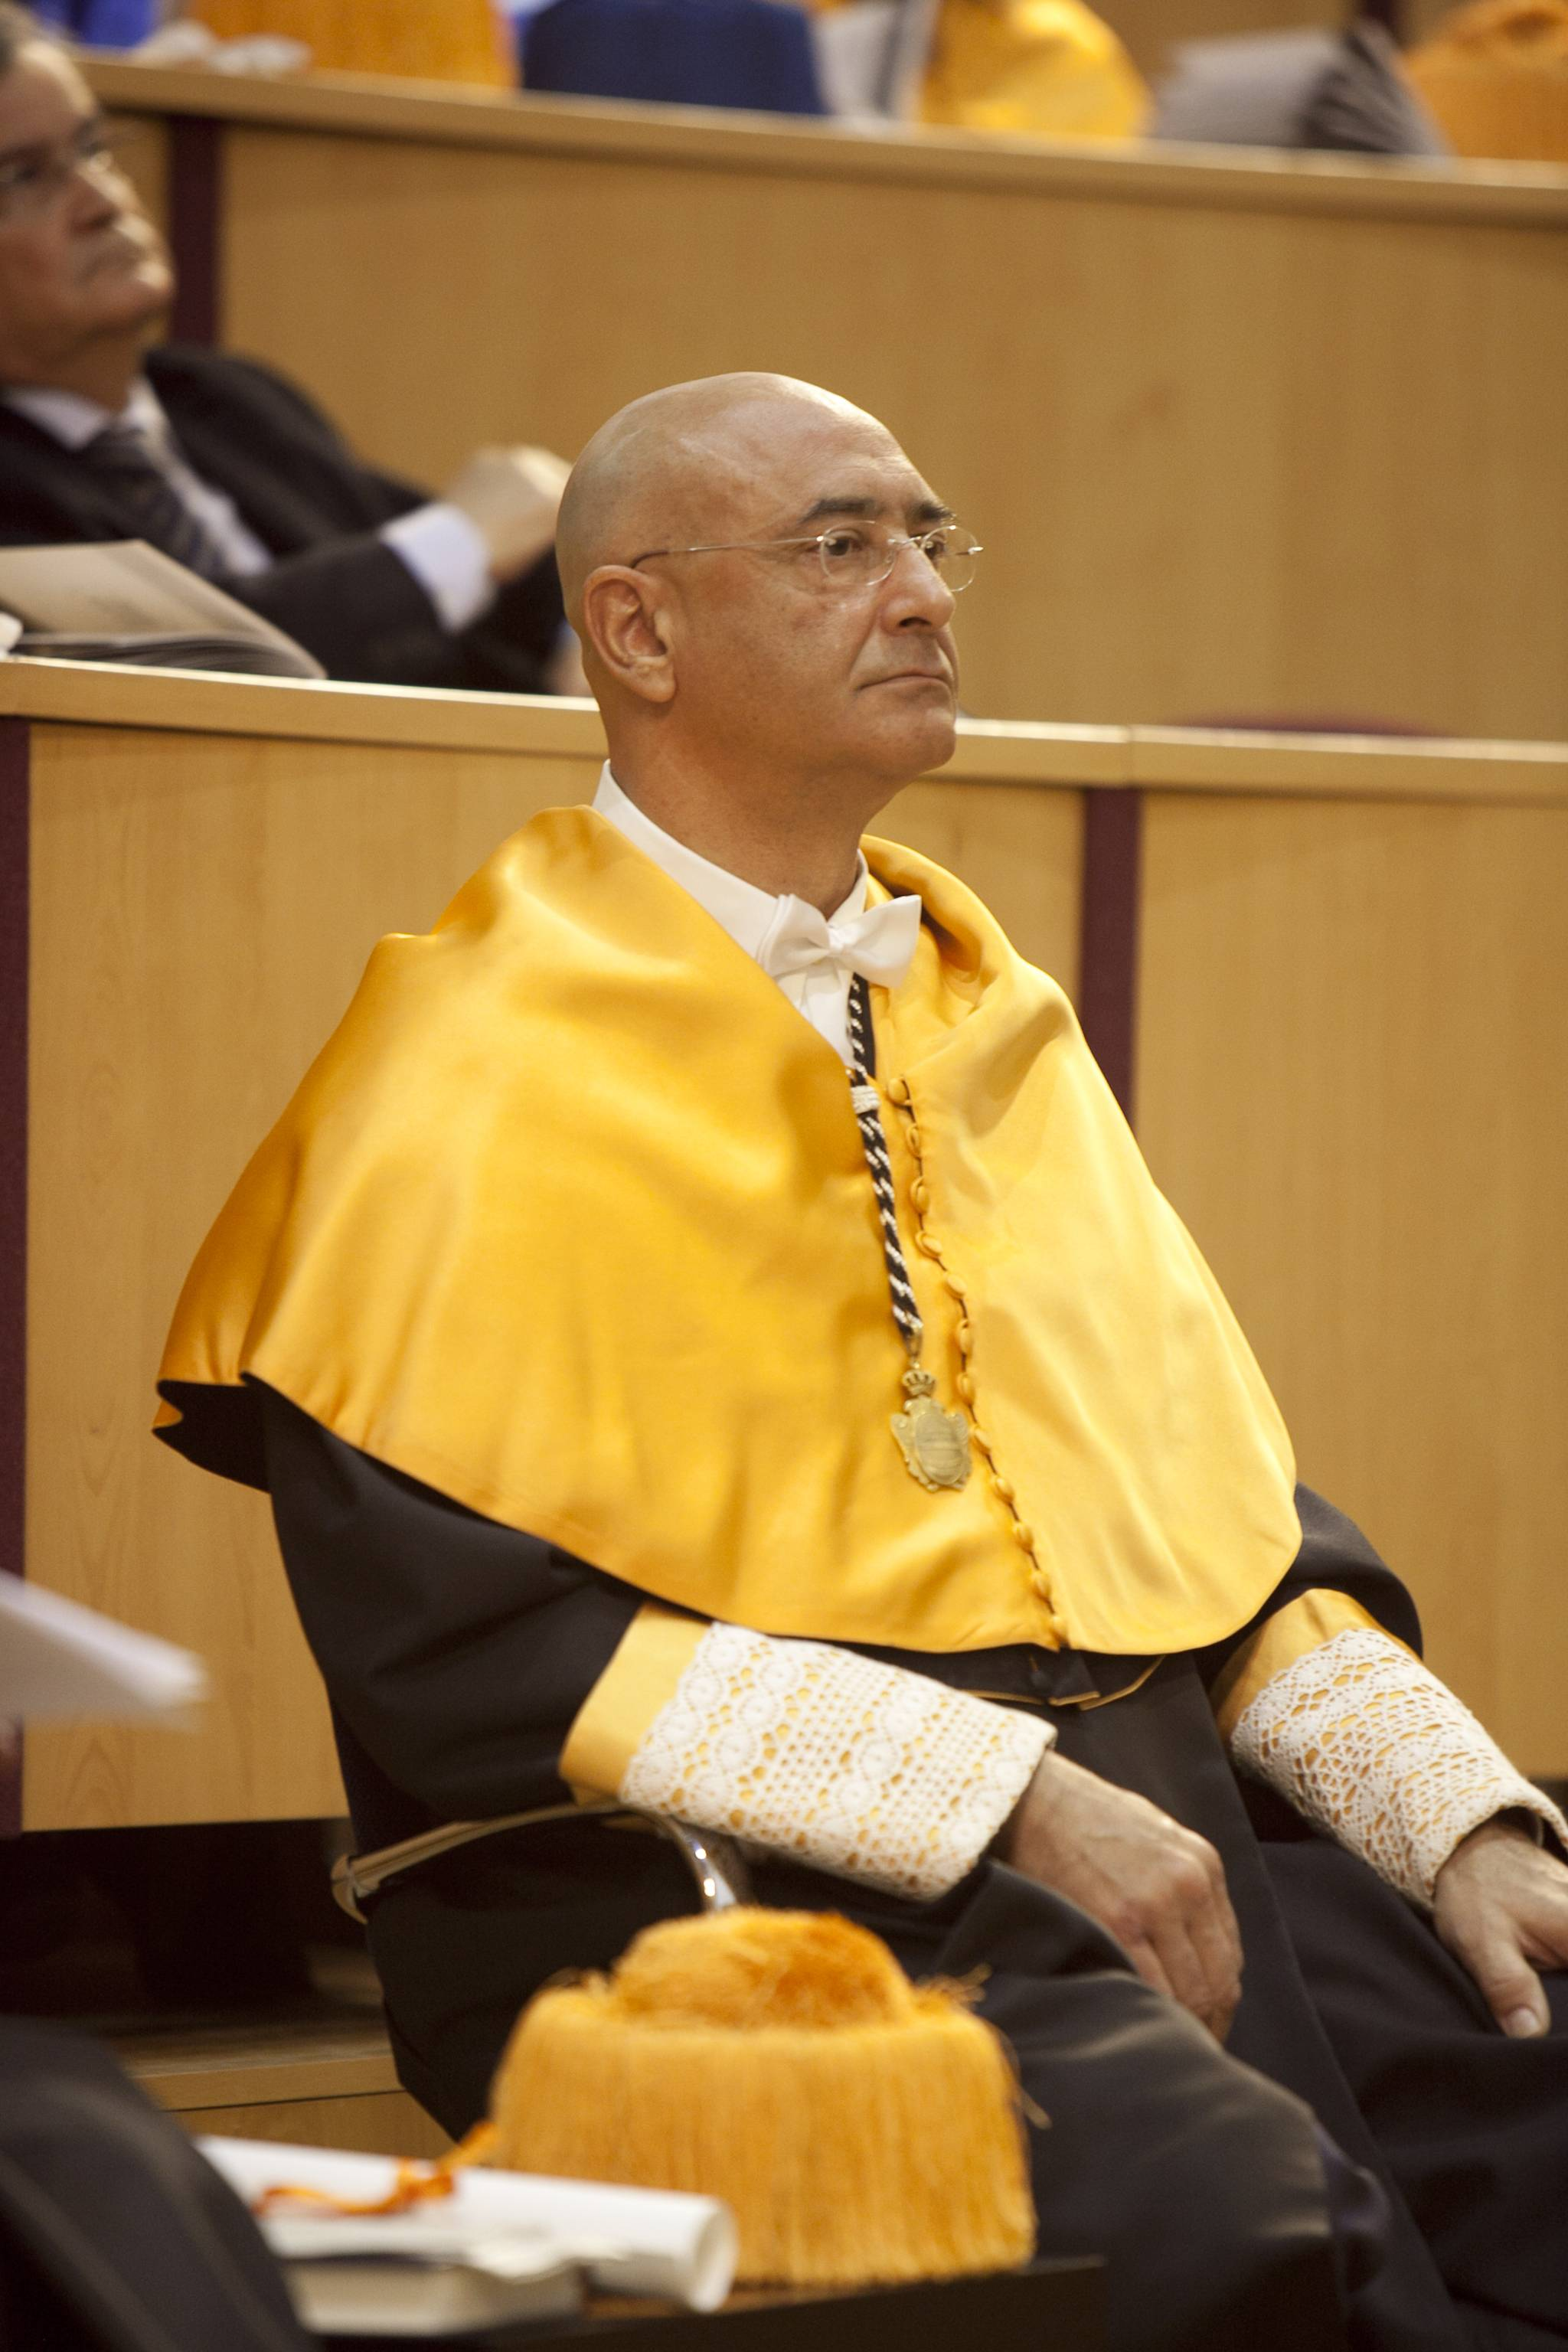 doctor-honoris-causa-luis-gamir_mg_0826.jpg